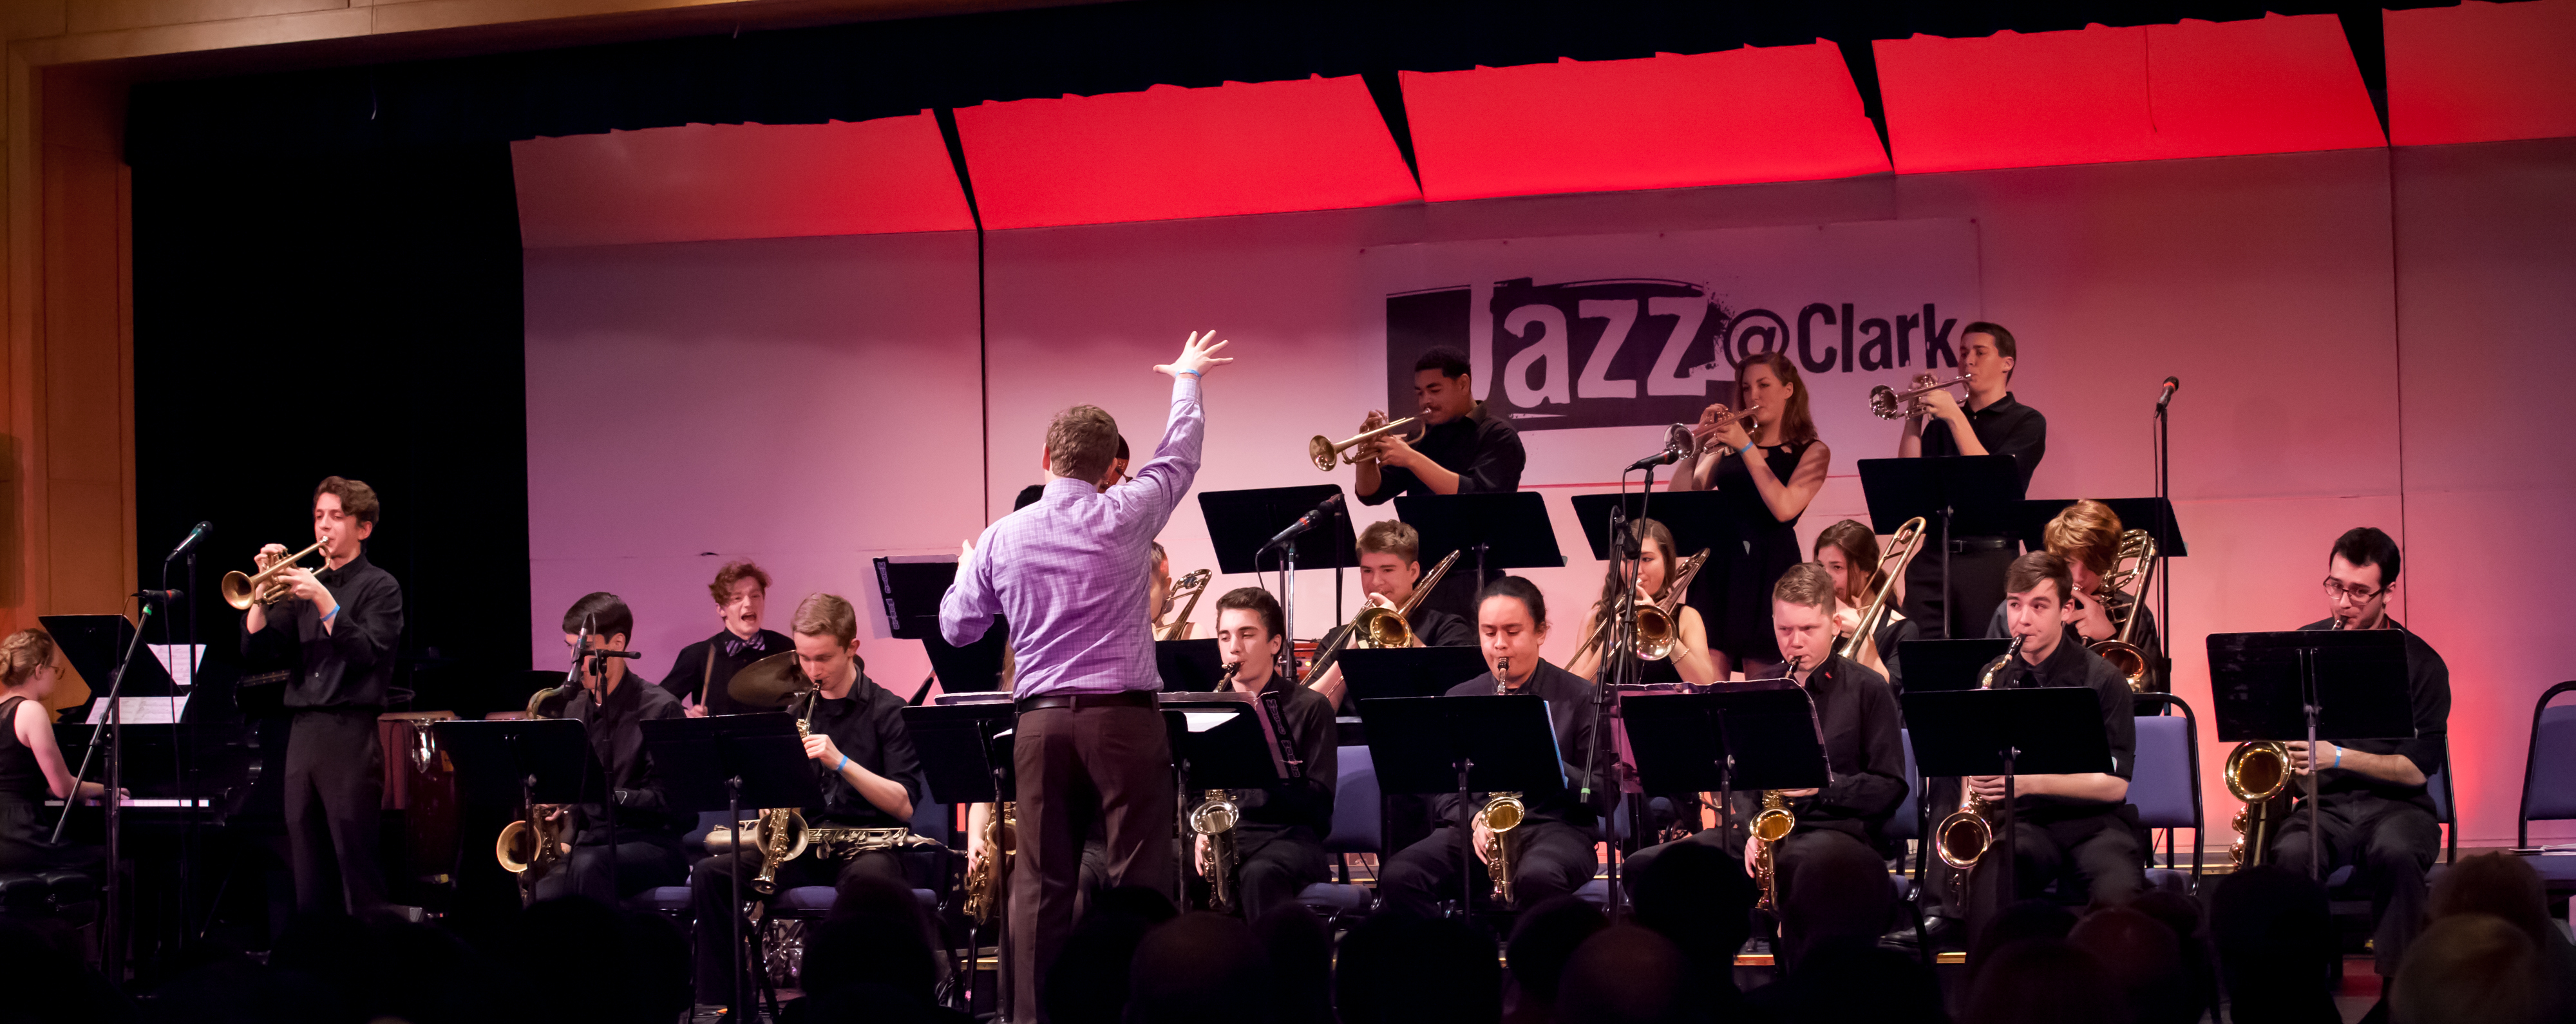 Students performing at Jazz fesitval